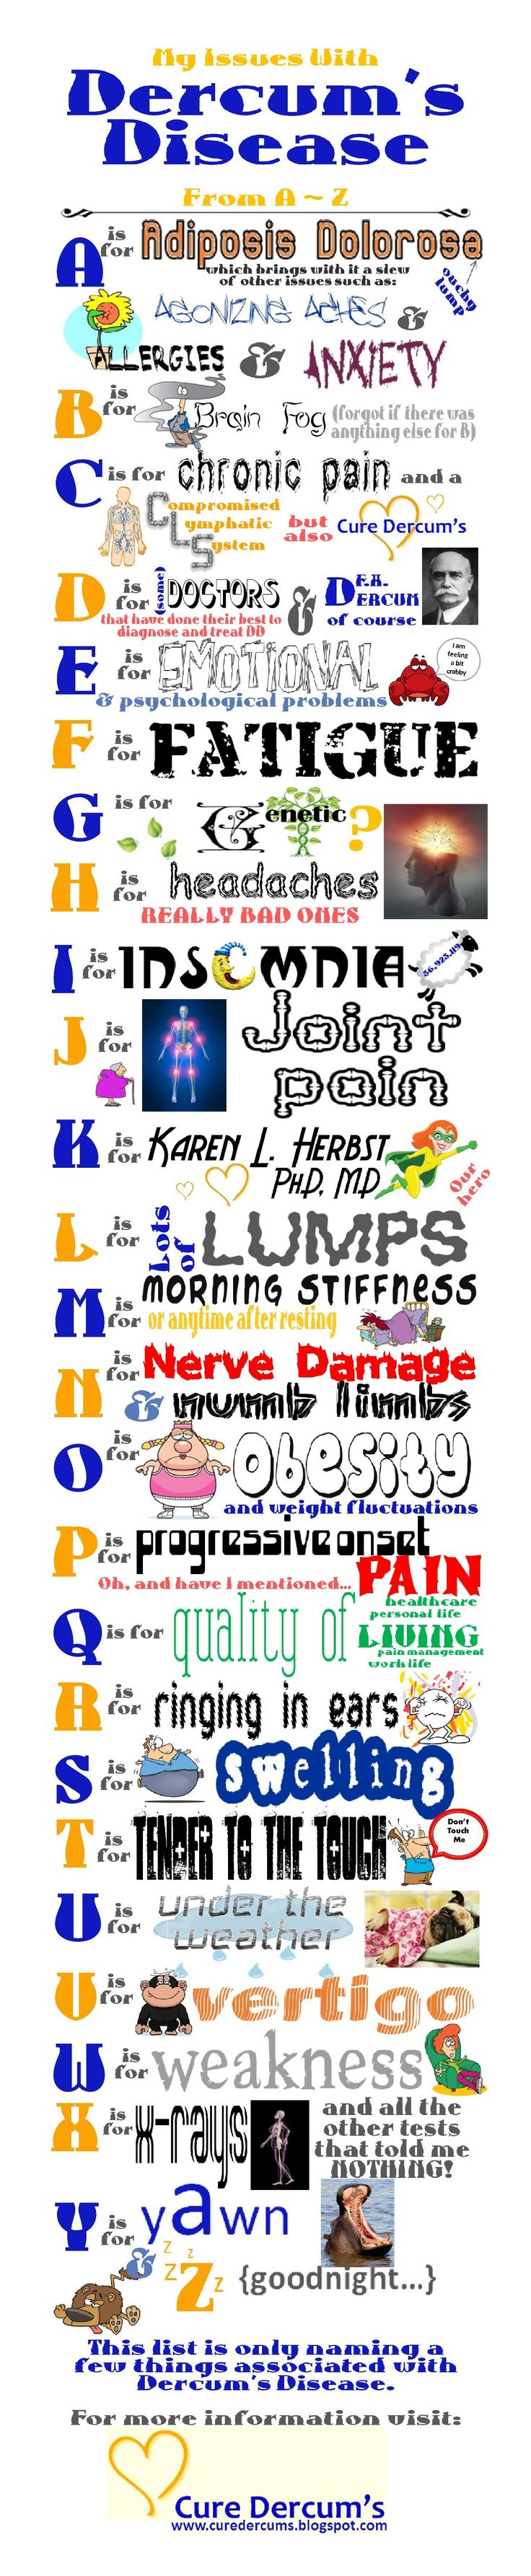 This lists just some of the issues I suffer with from Dercum's Disease a rare condition that causes chronic pain.